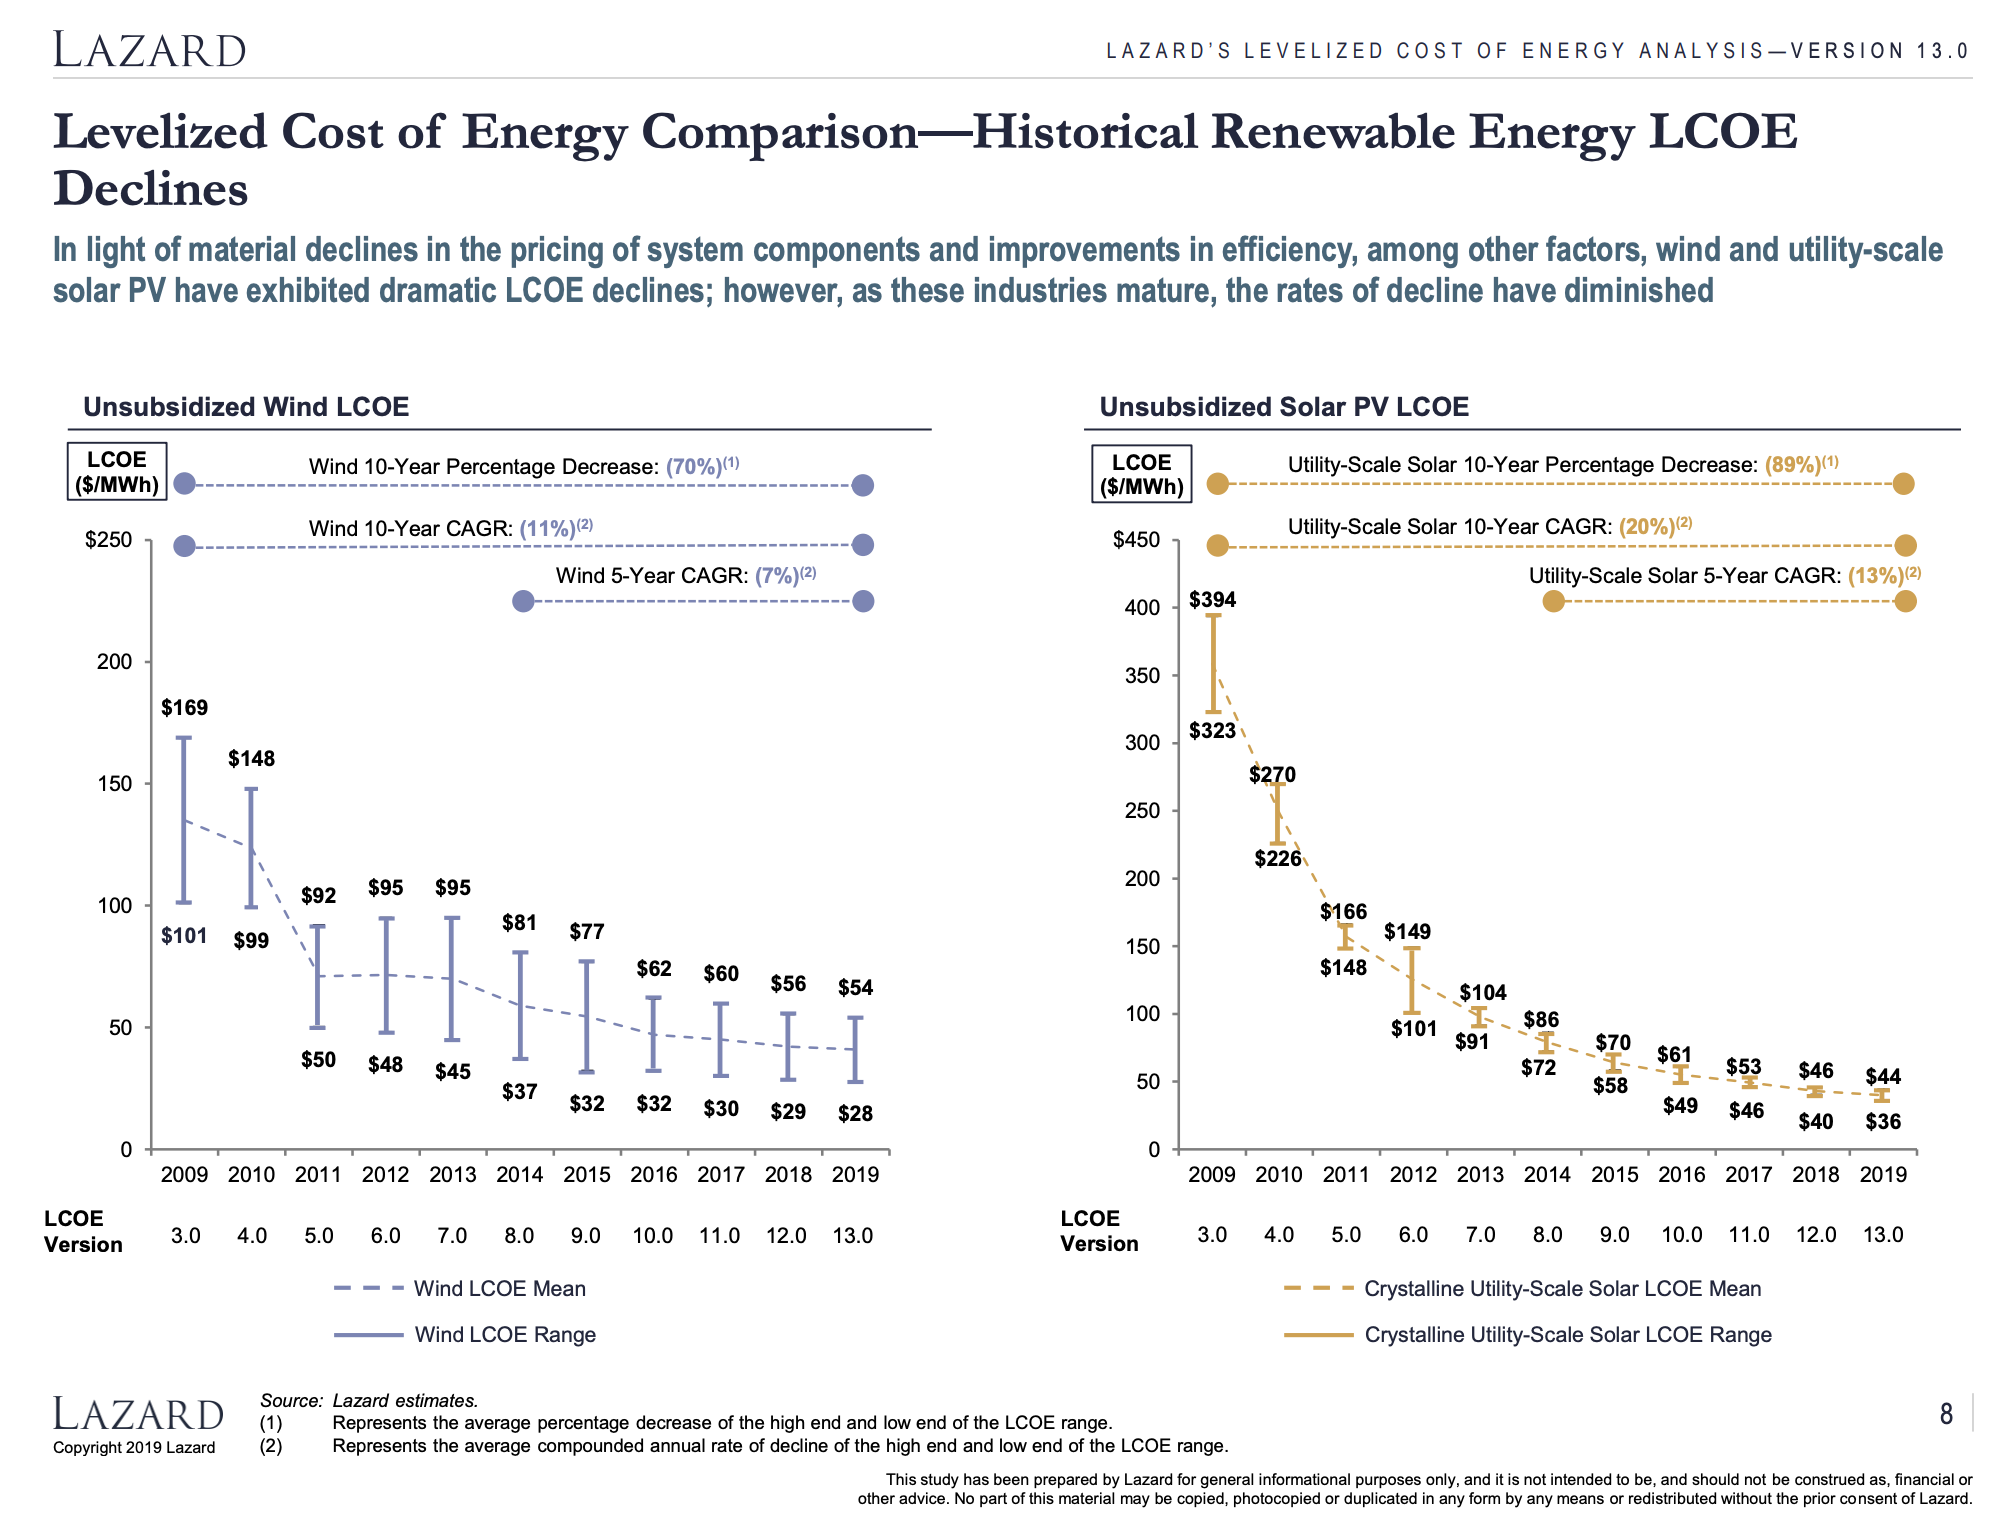 Carbon Pricing & The Energy Transition